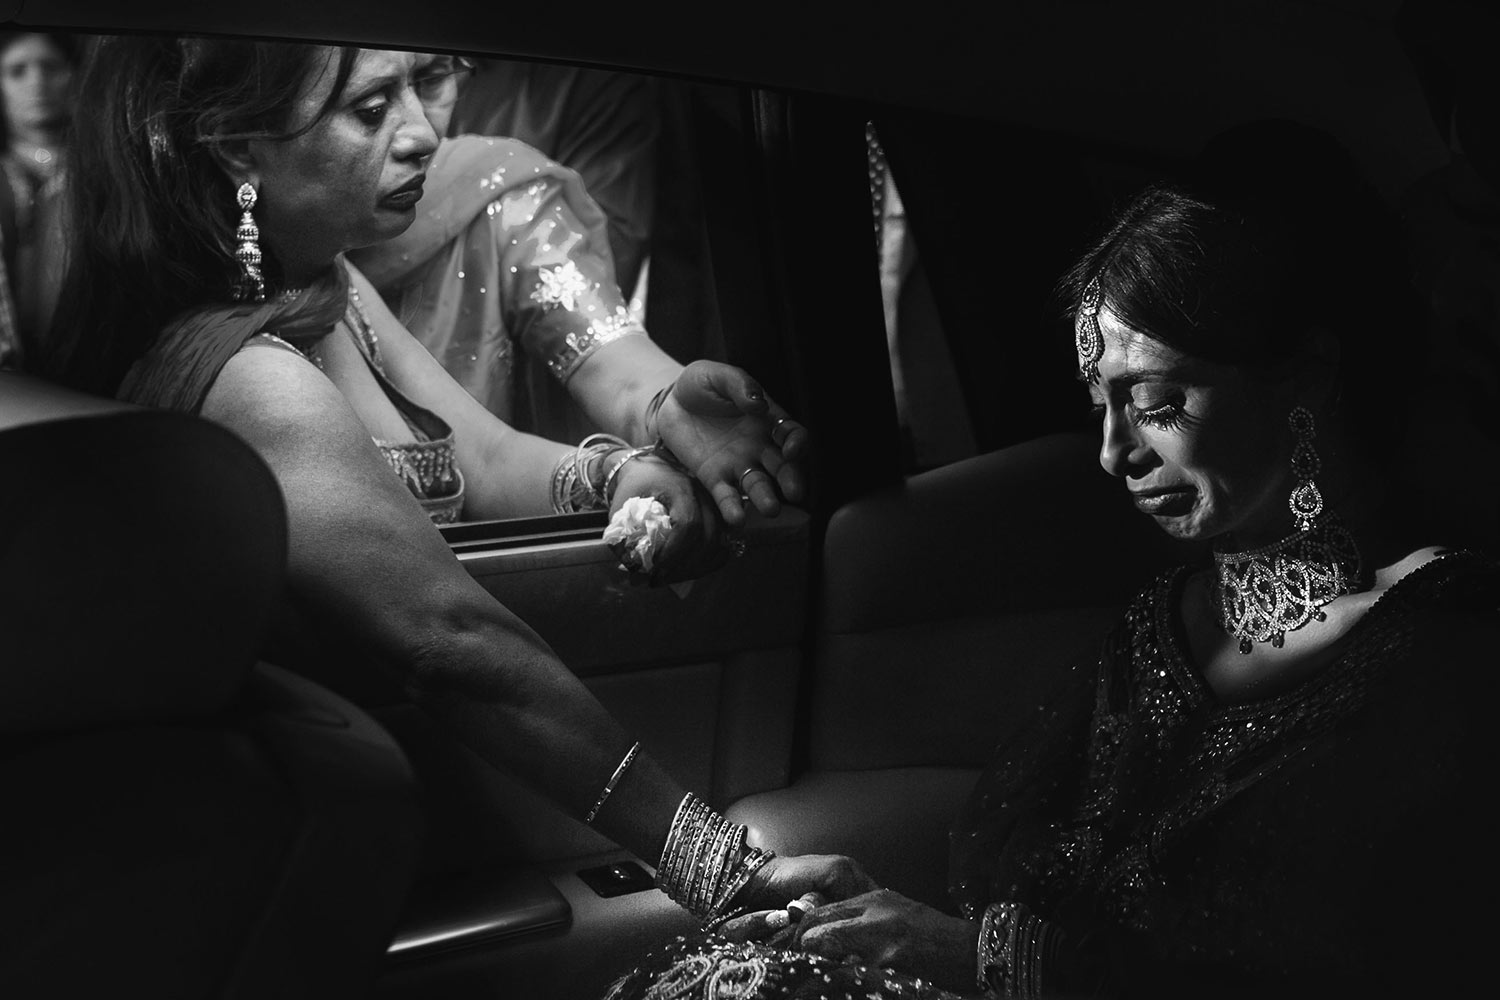 Tearful Indian bride as family bids farewell in limo, by Callaway Gable